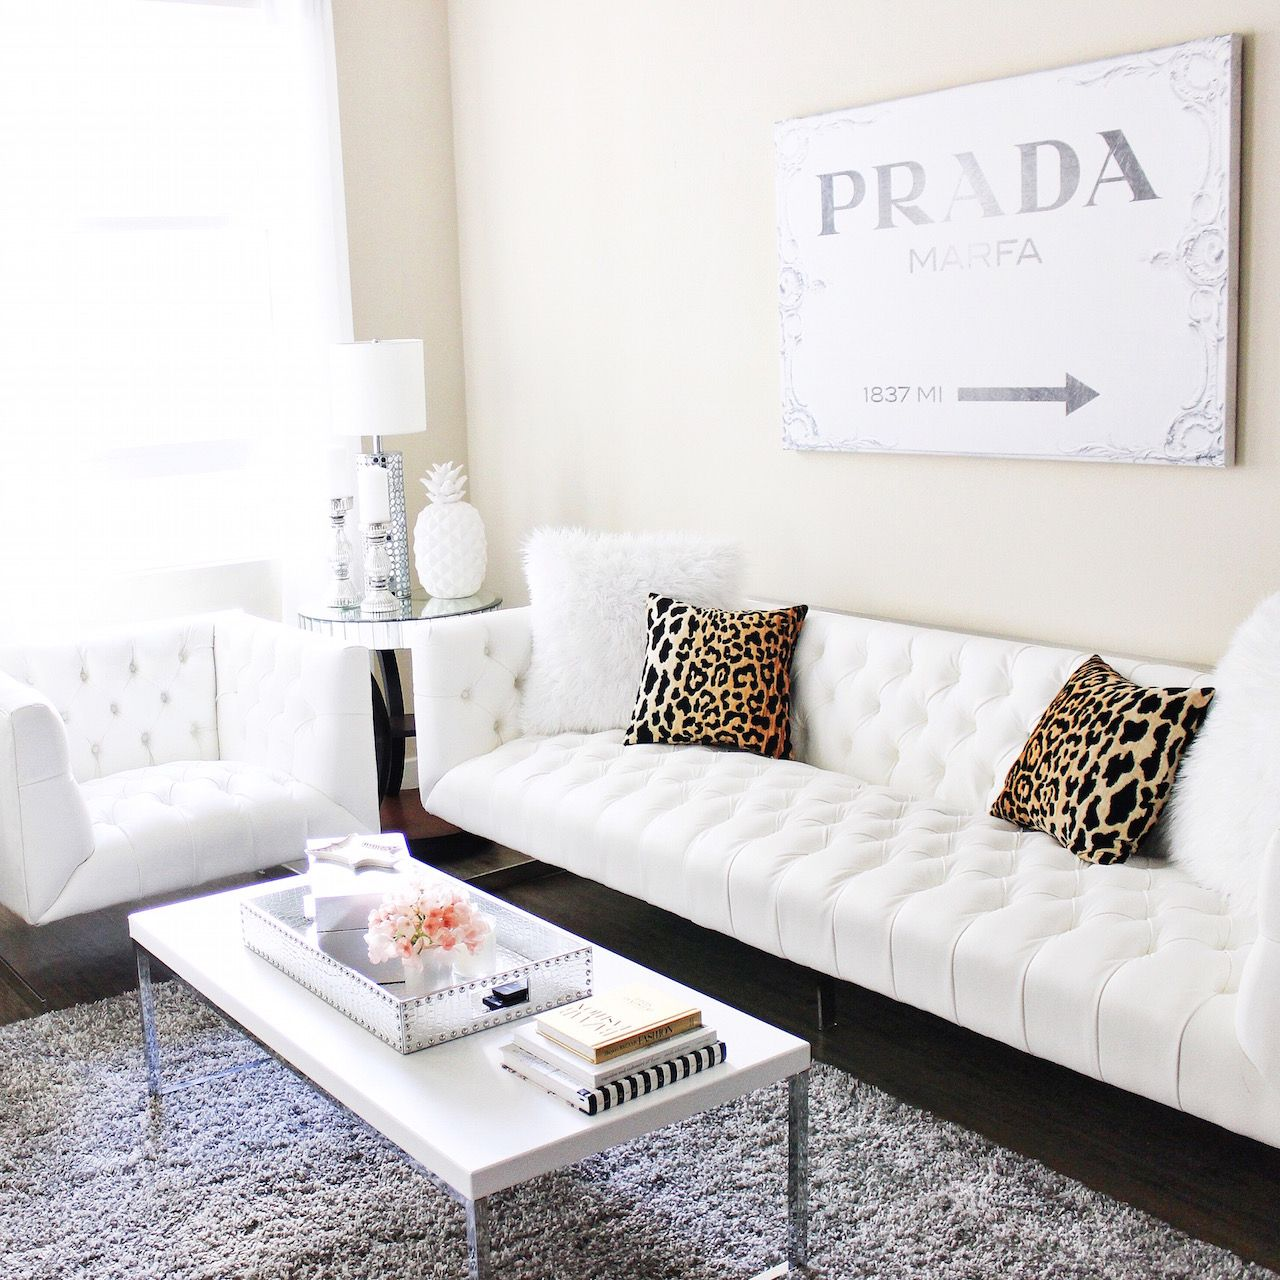 Awesome Blondie In The City Home Decor | White Tufted Couch | Leopard Pillows |  Prada Canvas